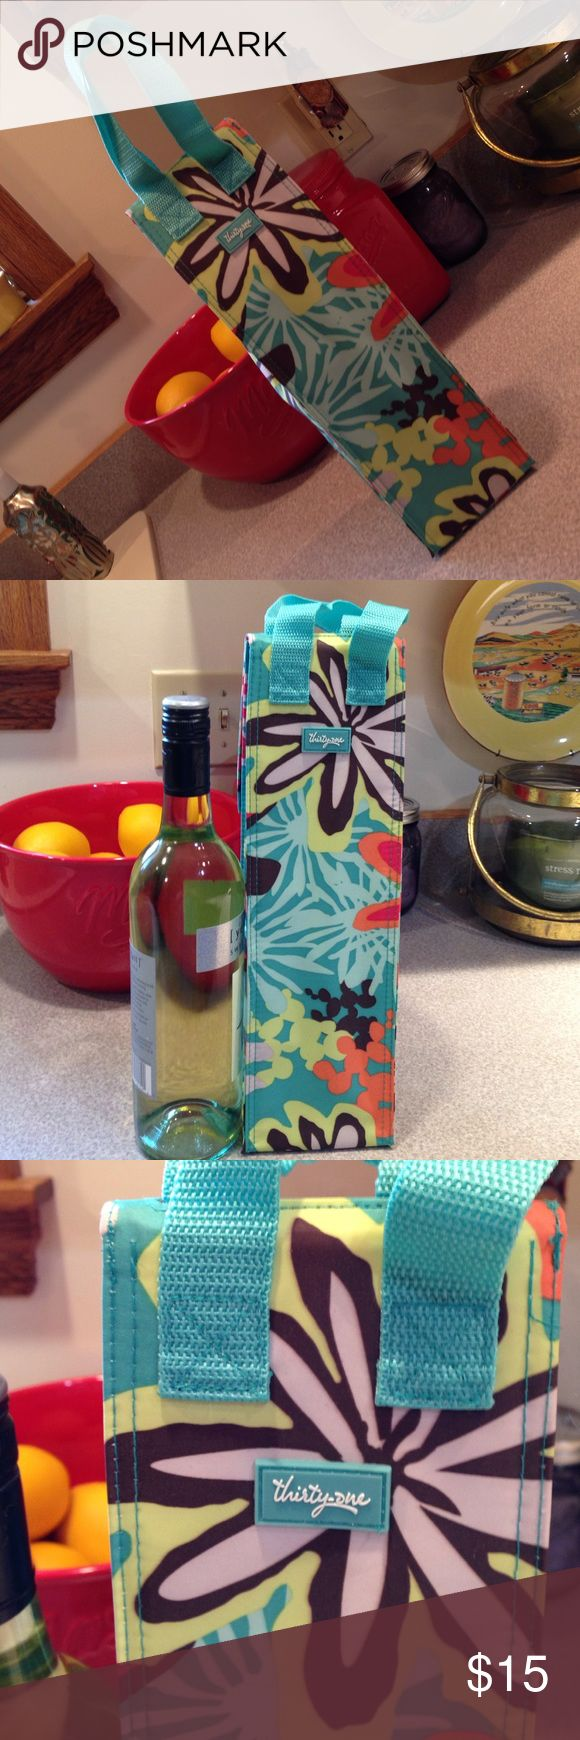 Thirty one wine bottle caddy Brand new Thirty one wine bottle caddy Thirty one Accessories